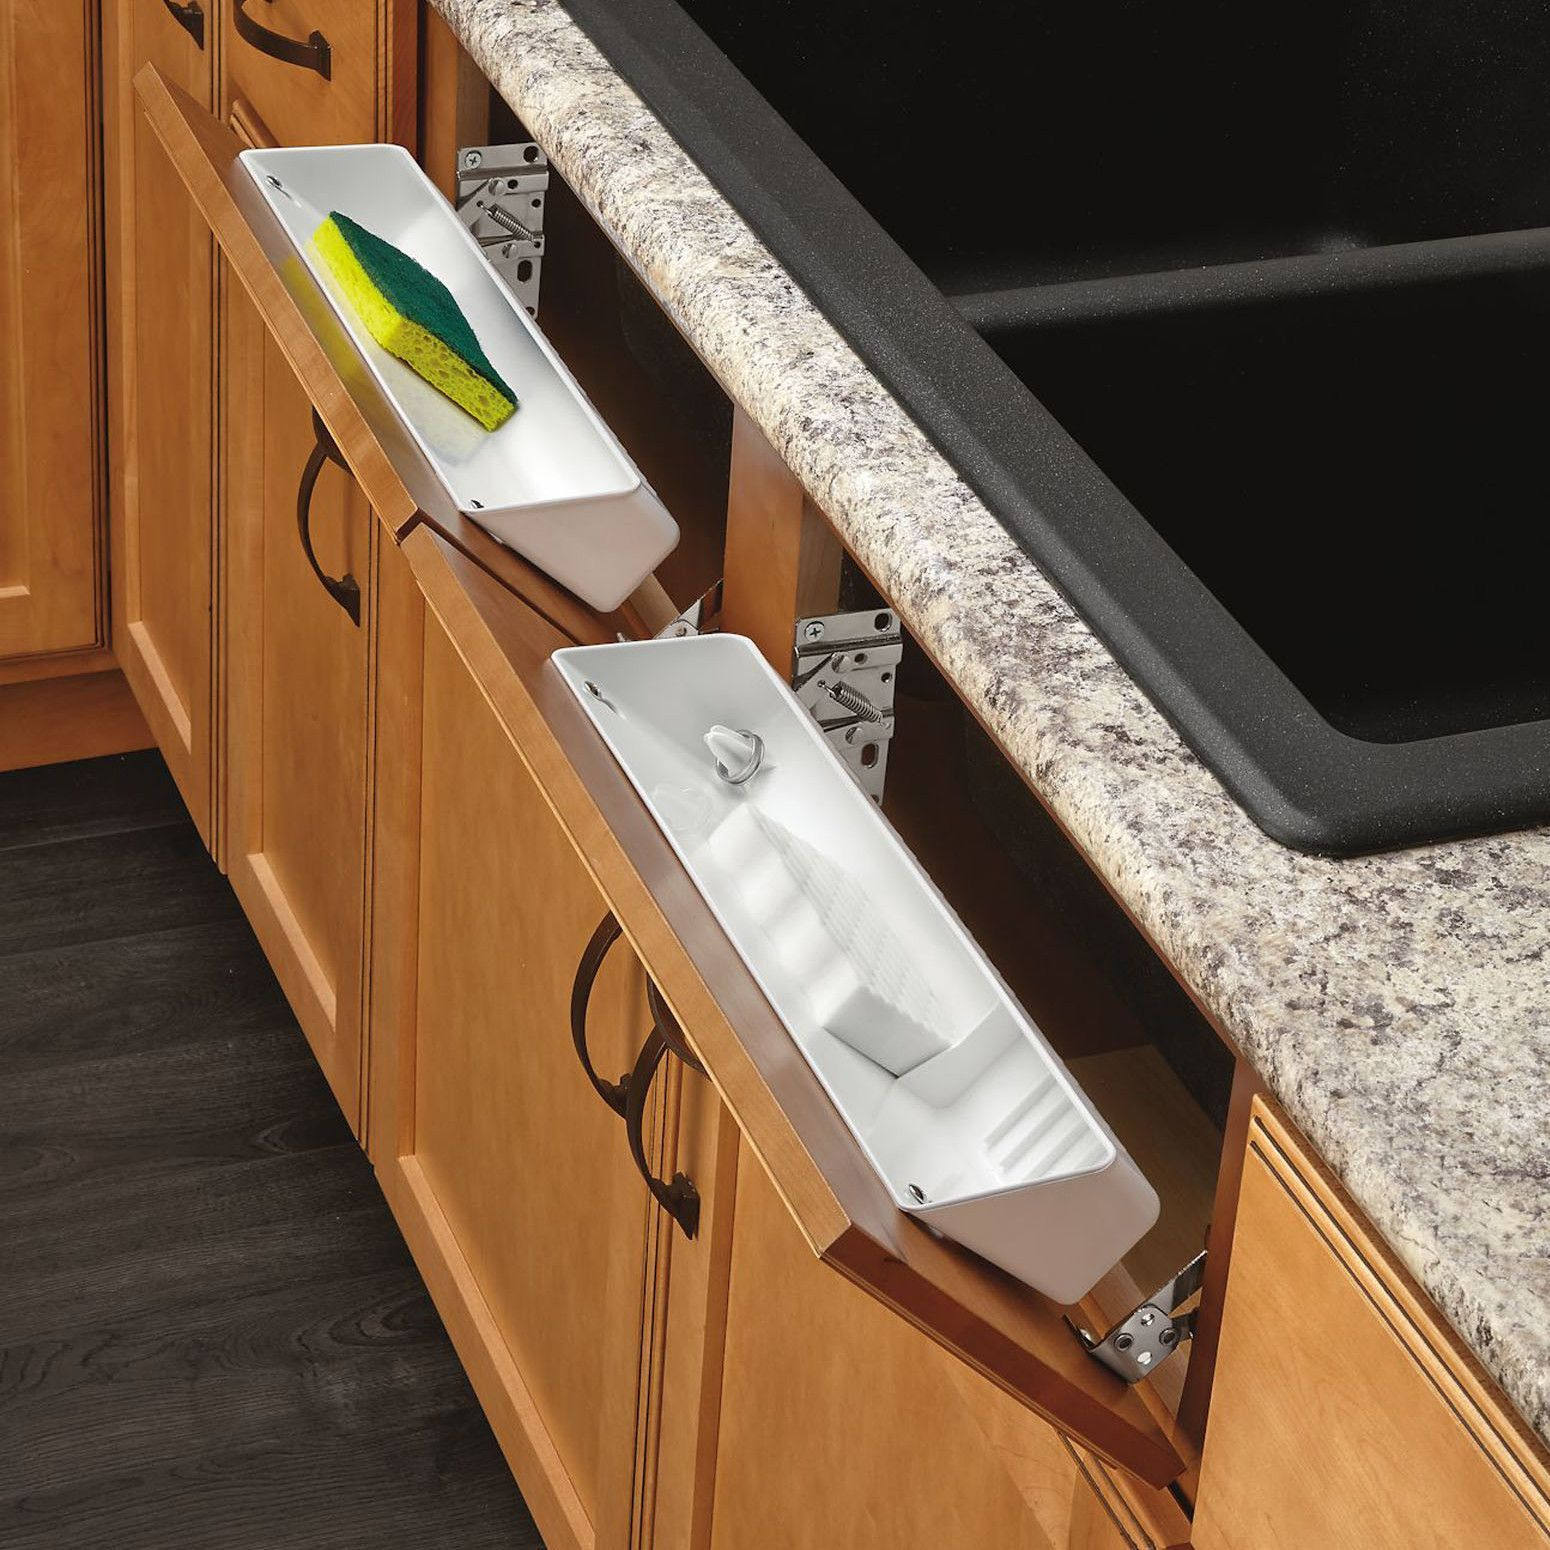 Kitchen Sink Cabinet Tray Features Includes One Conventional Open Tray One